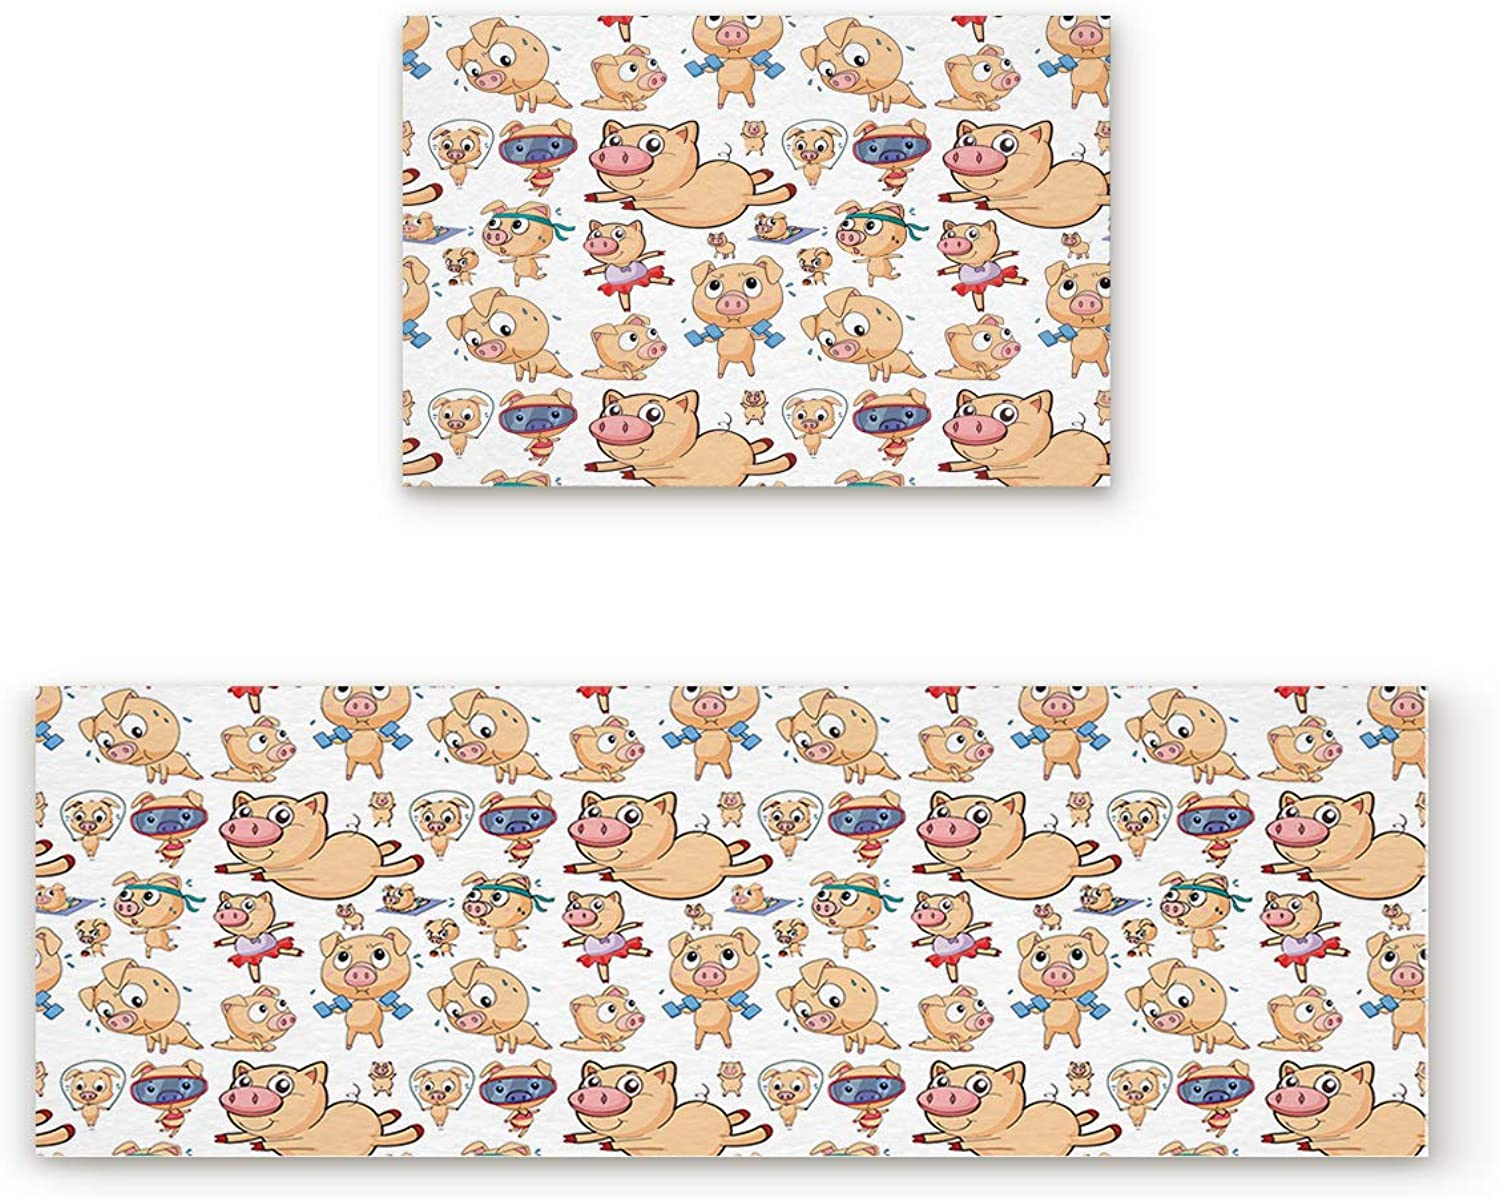 Aomike 2 Piece Non-Slip Kitchen Mat Rubber Backing Doormat Cute Pattern of Pigs Doing Various Sports Runner Rug Set Hallway Living Room Balcony Bathroom Carpet Sets (19.7  x 31.5 +19.7  x 47.2 )